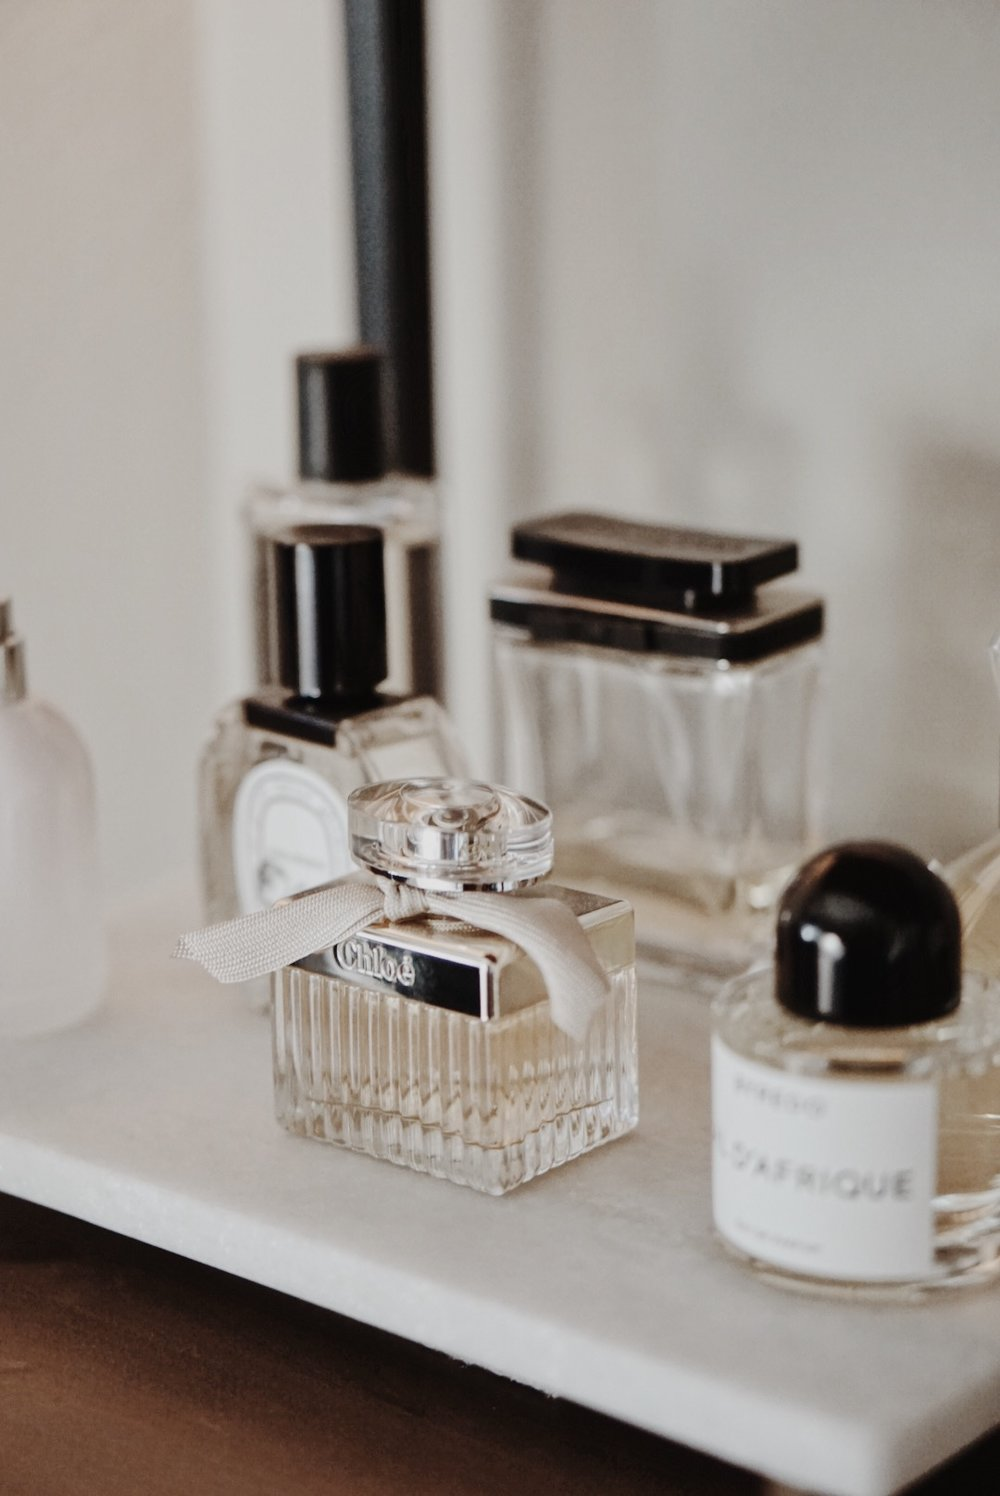 Fragrance Wardrobe - Chloe EDP, Marc by Marc Jacobs, Byredo Bal d'Afrique